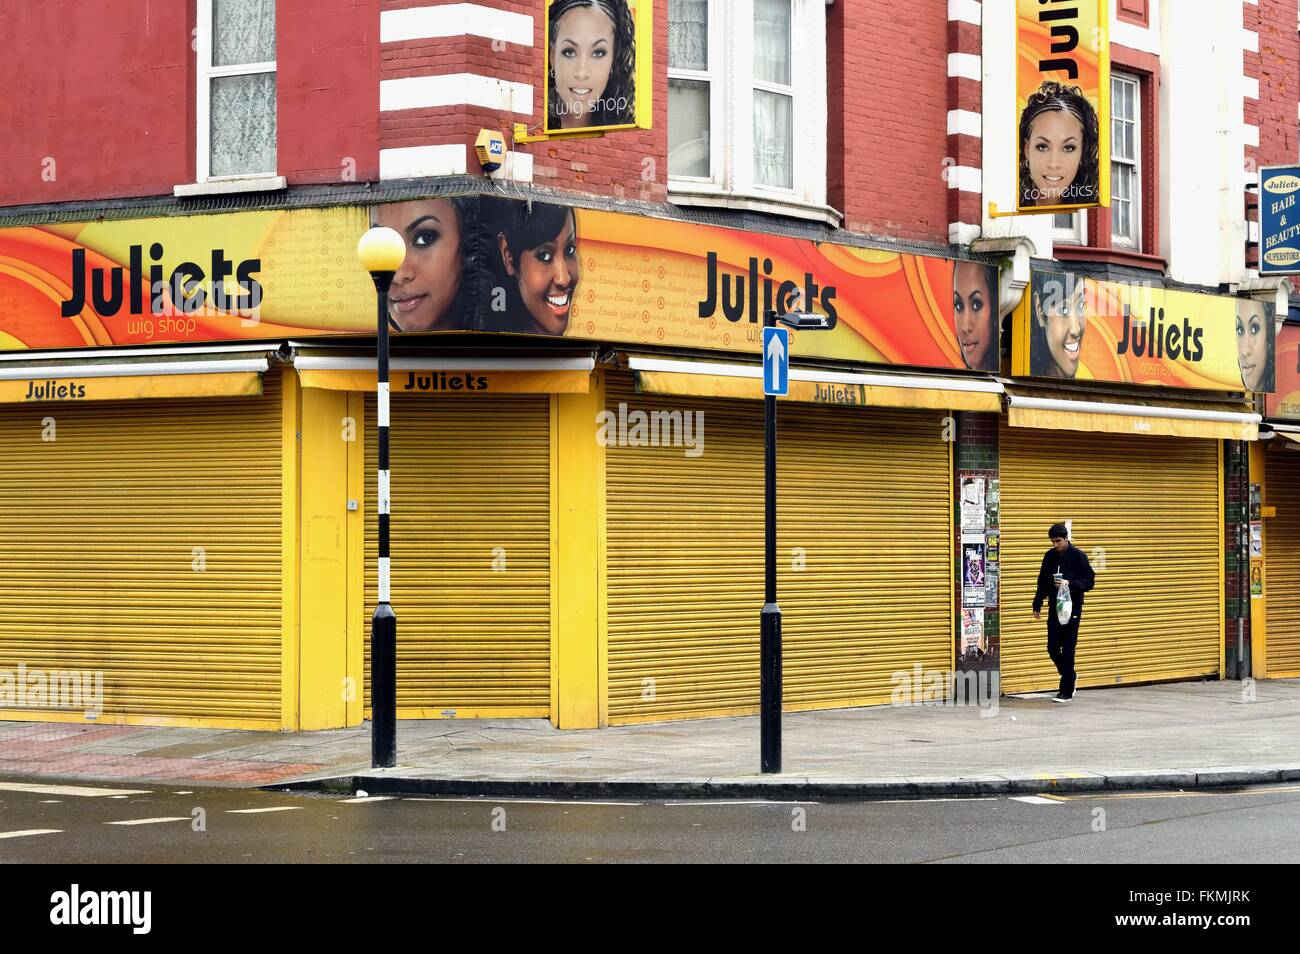 Closed shop on Harlesden high street London UK - Stock Image